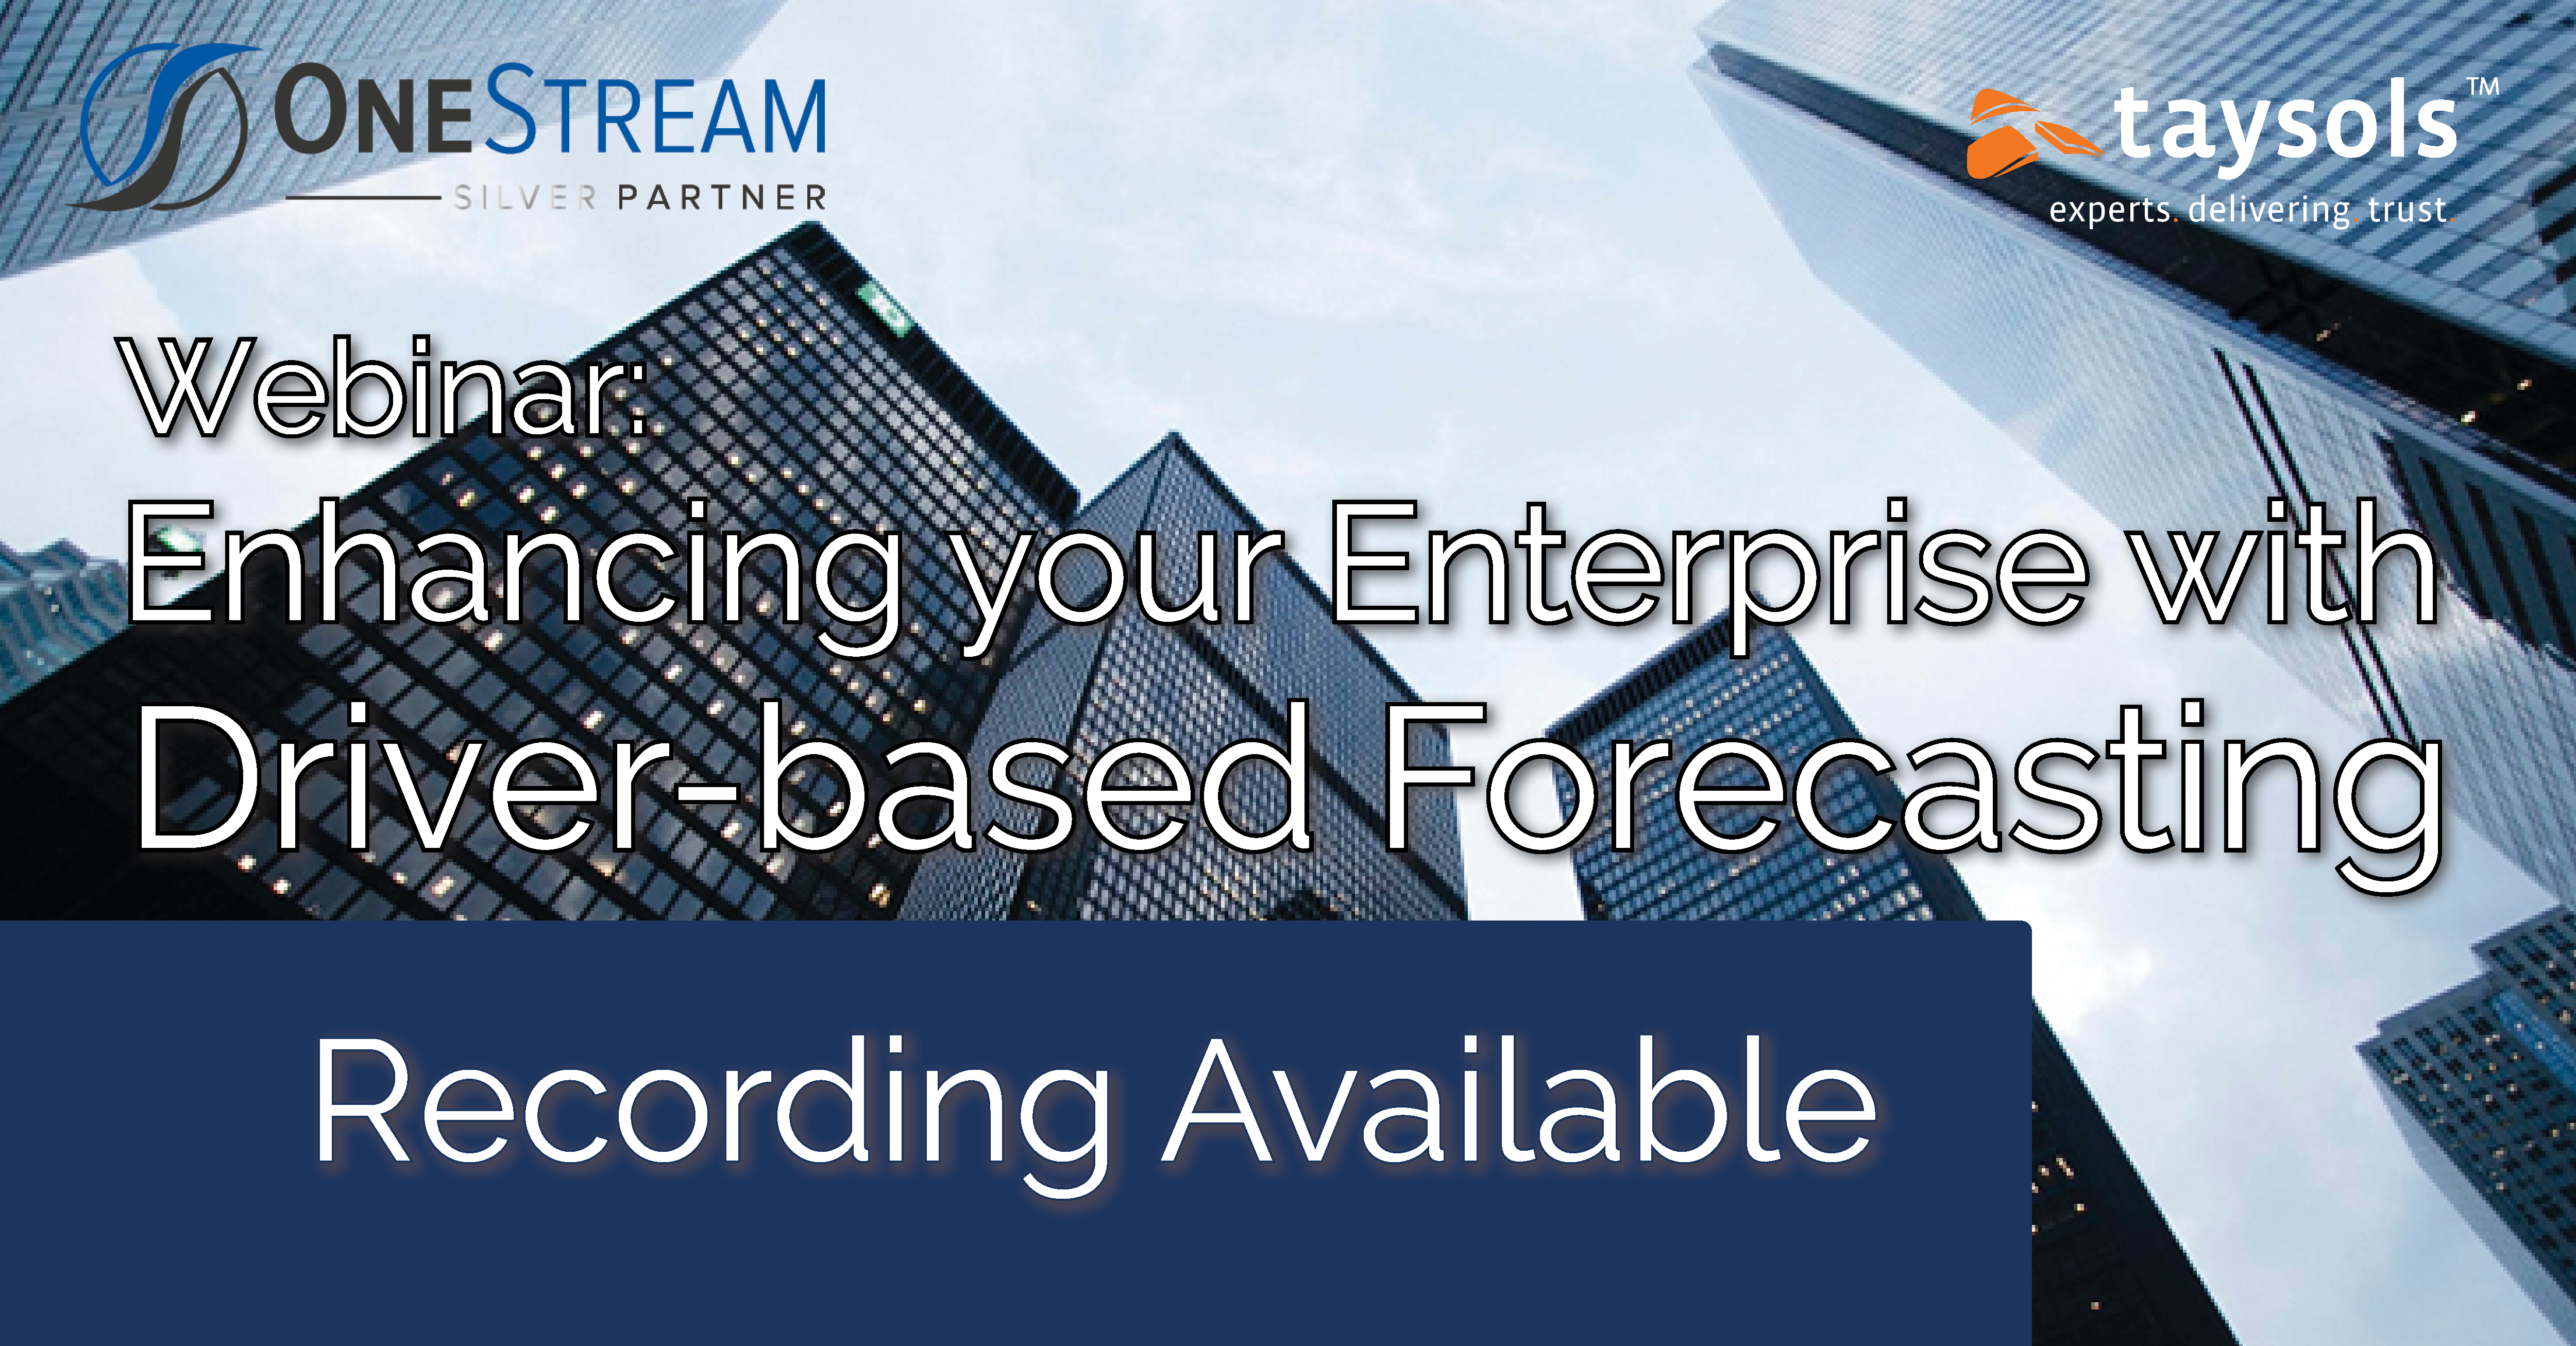 Webinar Replay: Enhancing your Enterprise with Driver-Based Forecasting